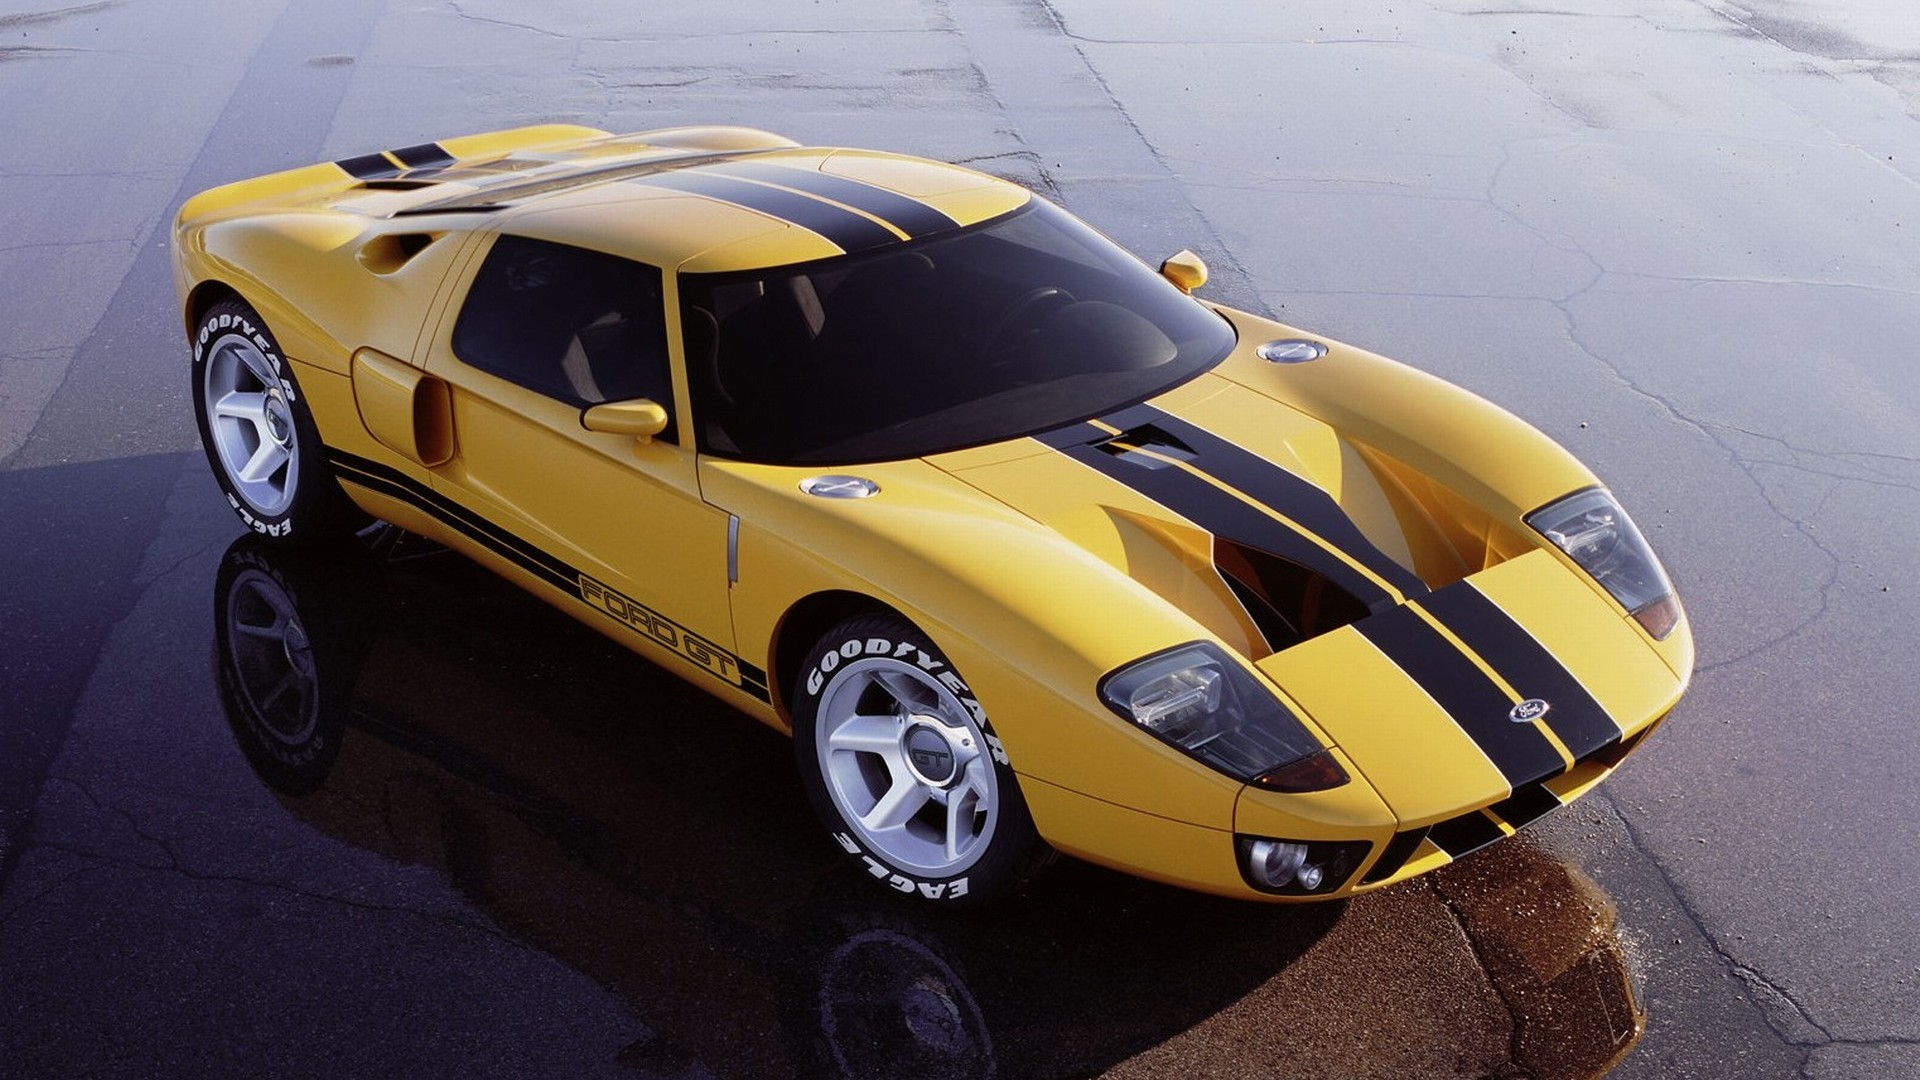 Ford GT40 Concept 2002 02 1920x1080 WallpapersFord GT 1920x1080 1920x1080